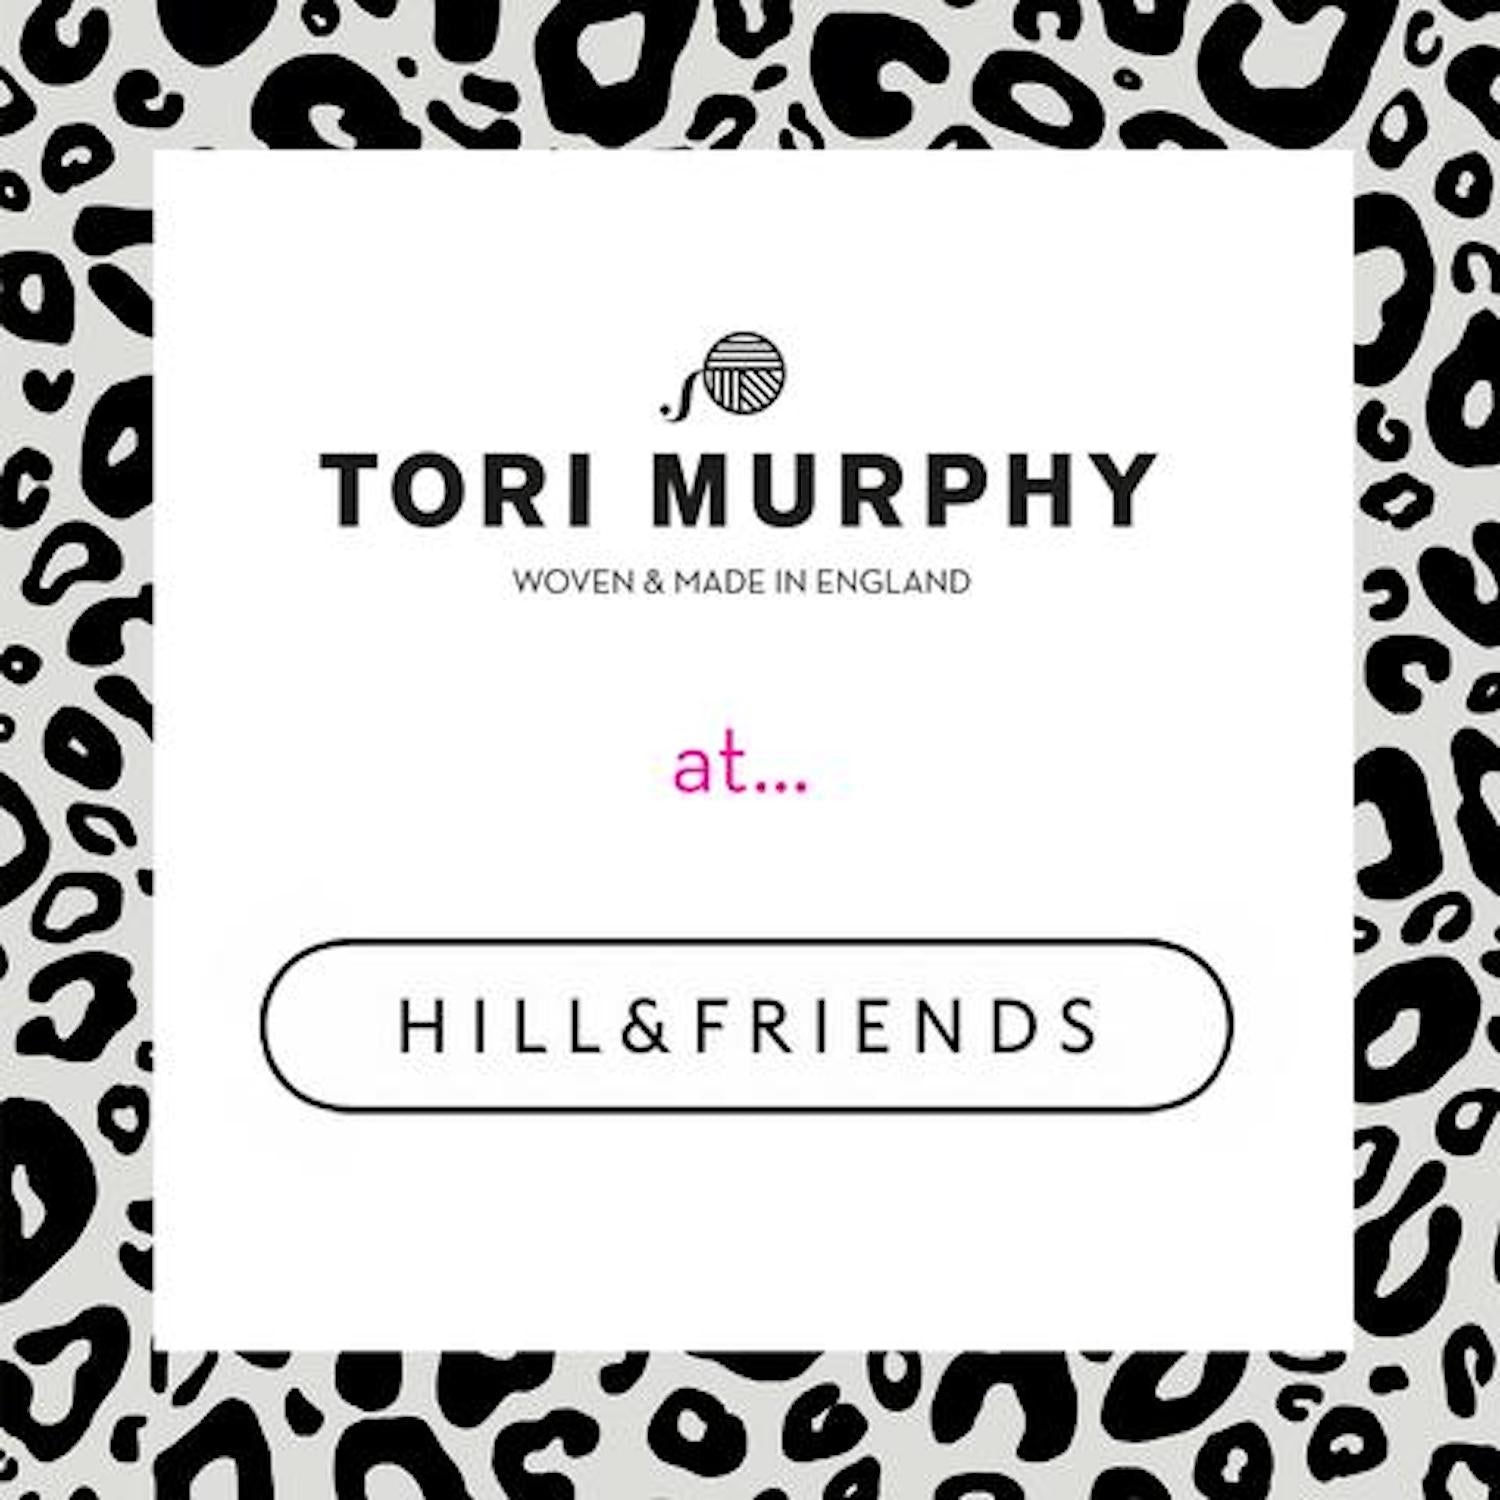 Hill & Friends x Tori Murphy